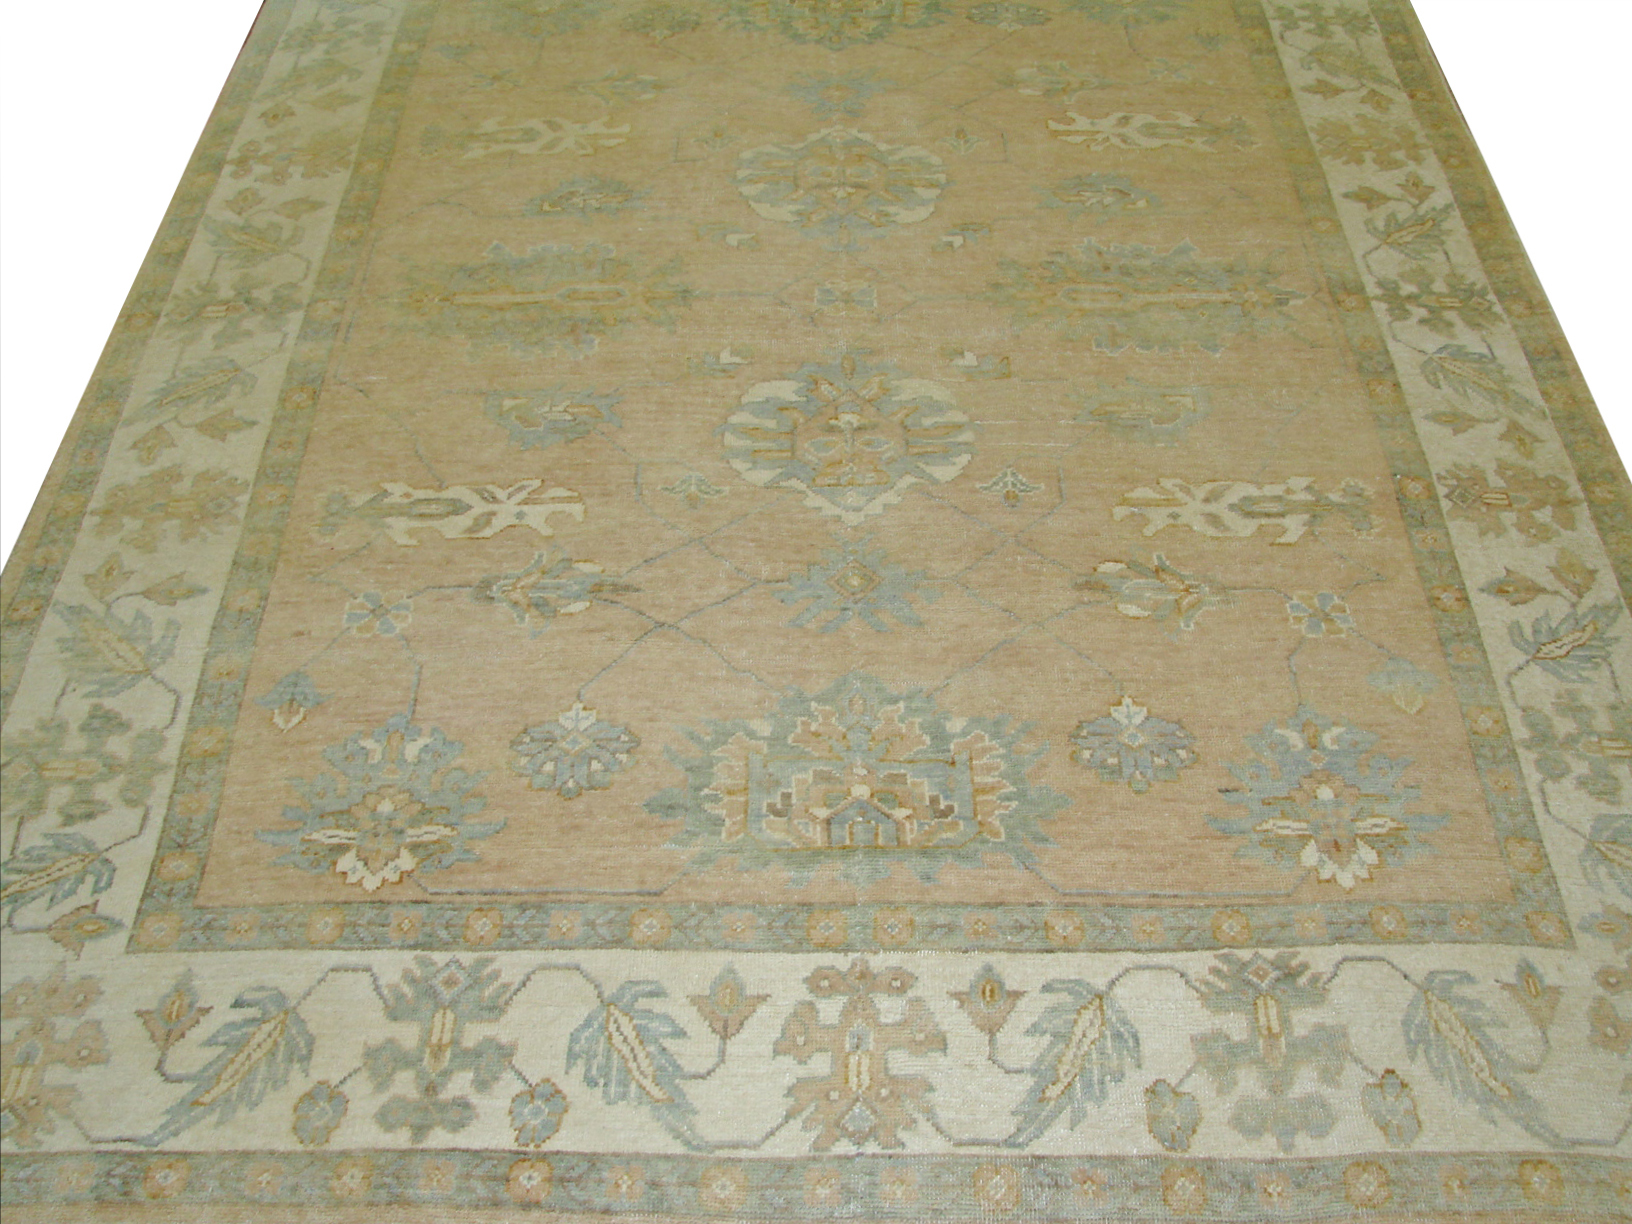 8x10 Oushak Hand Knotted Wool Area Rug - MR14604